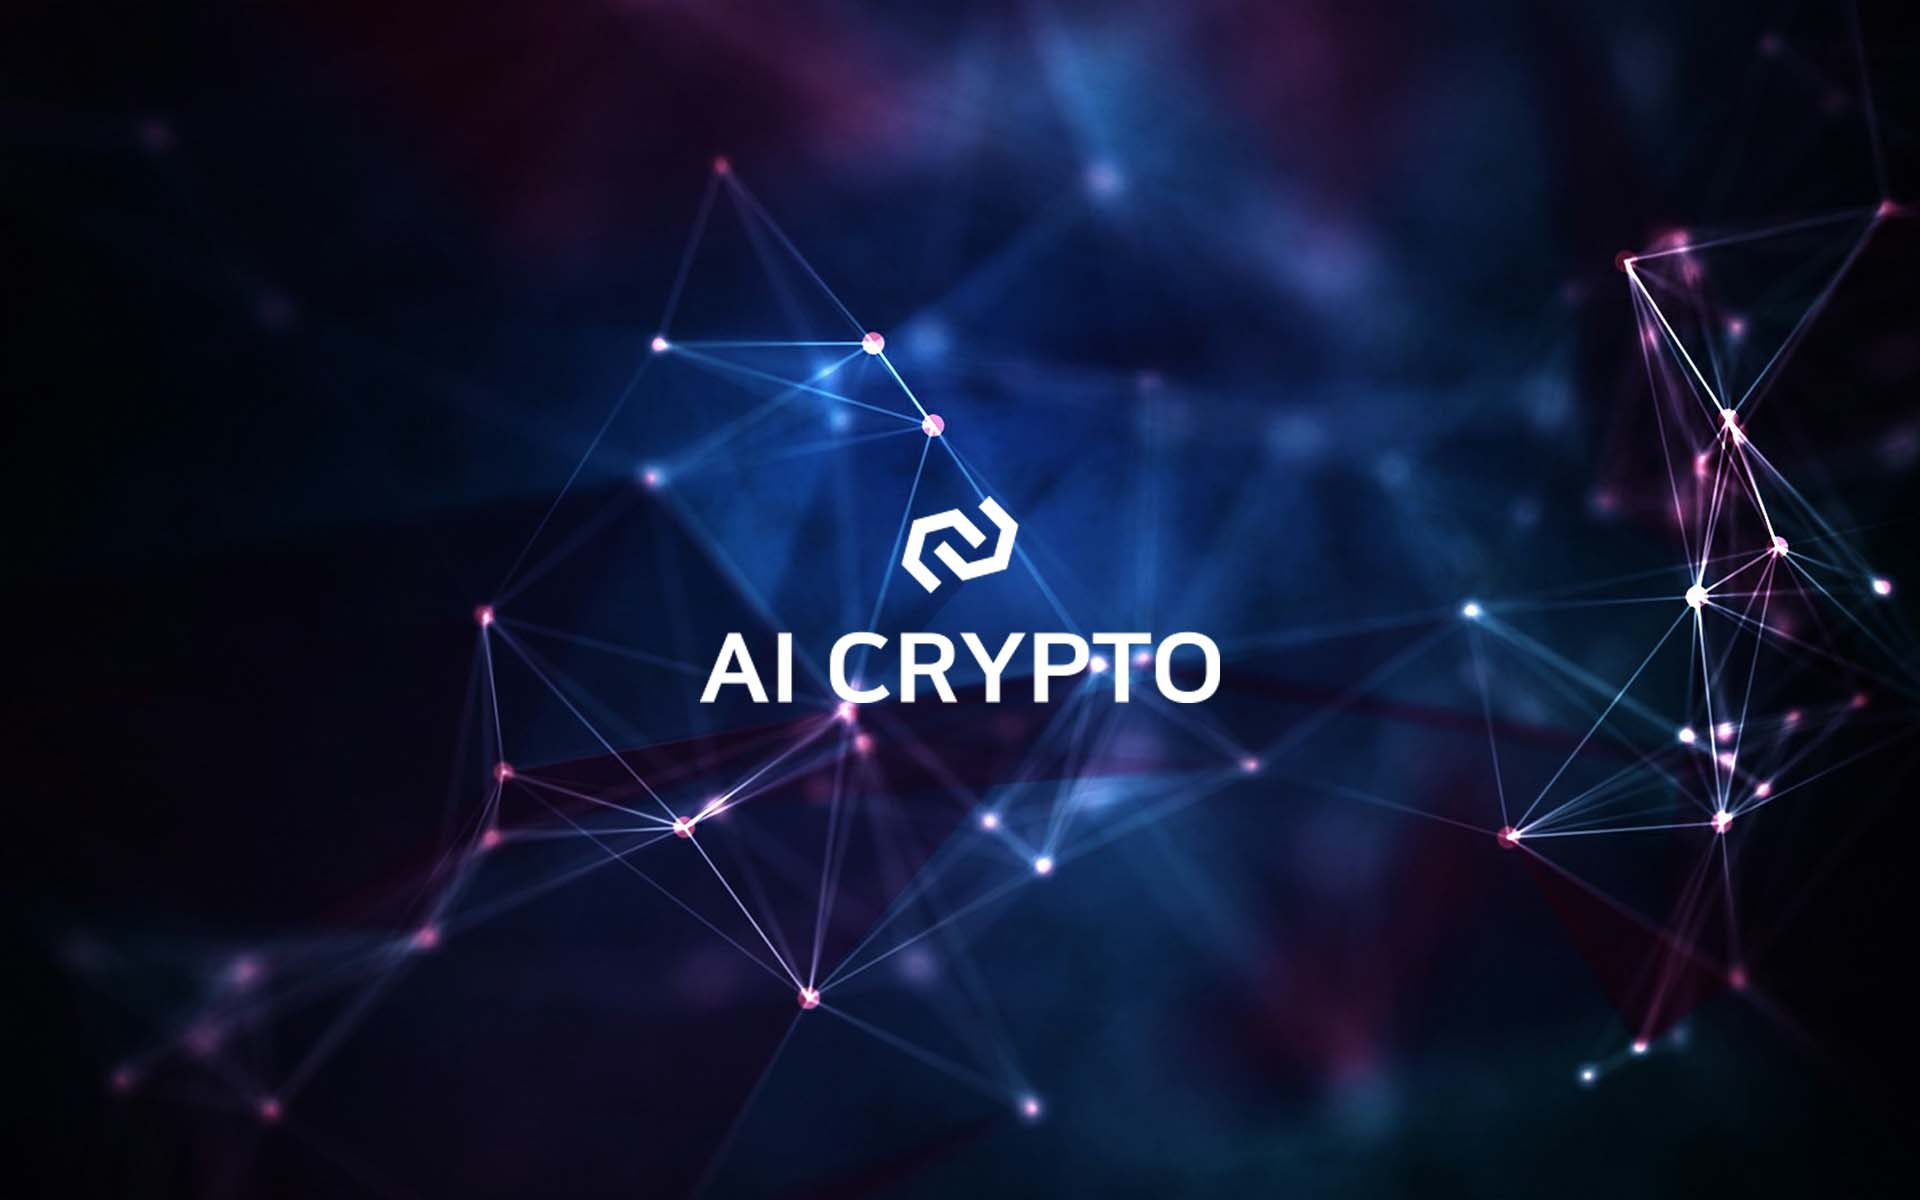 AI Crypto Opens AI Ecosystem Based on Blockchain